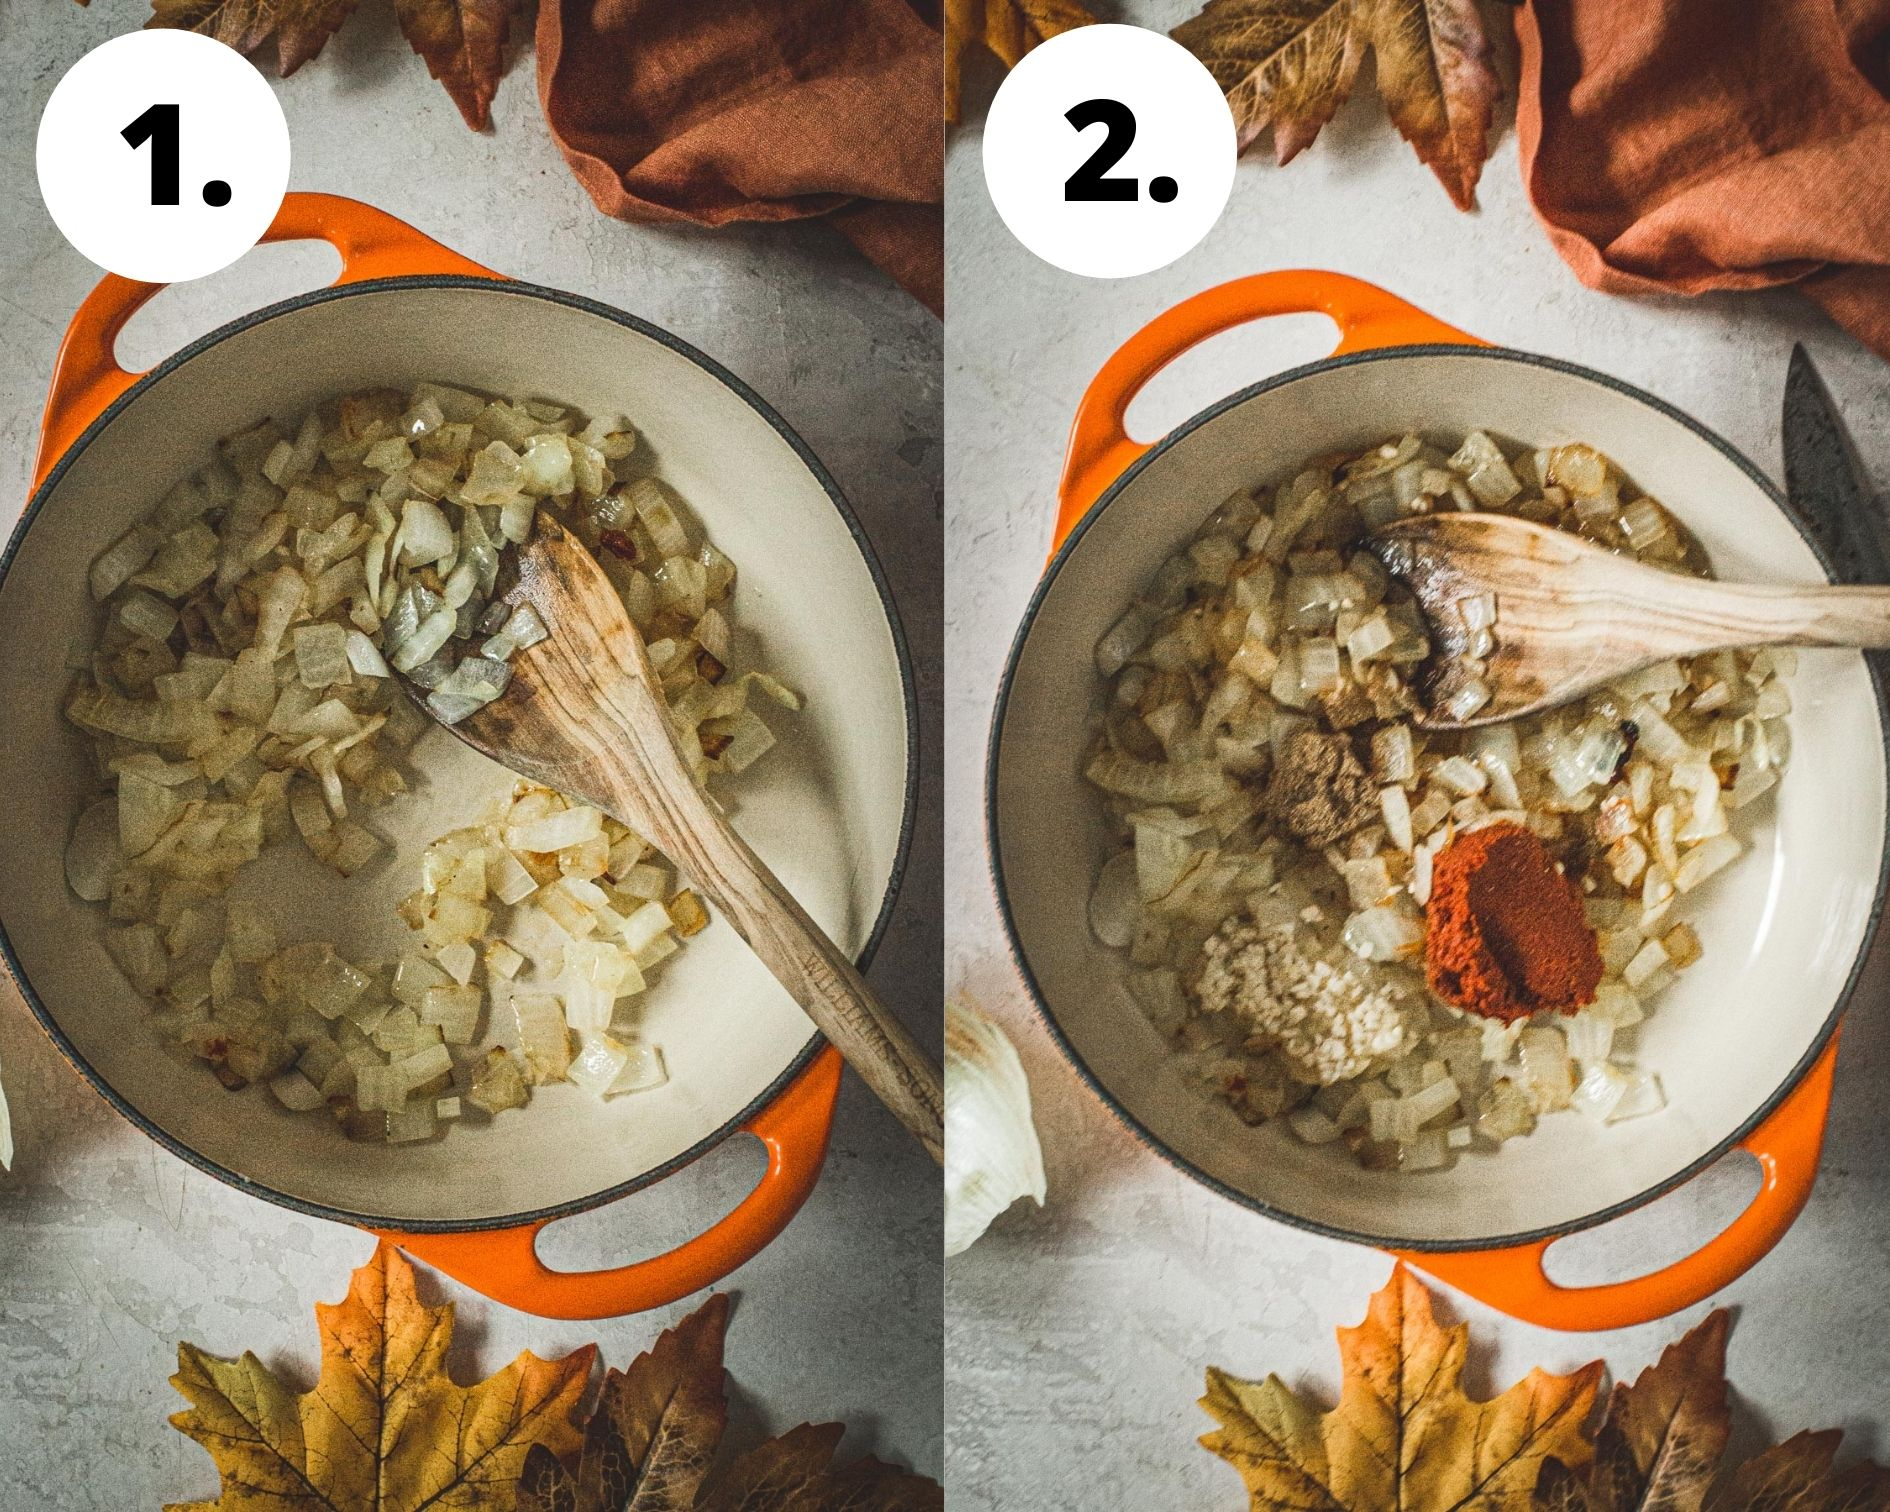 Curried pumpkin soup process steps 1 and 2.